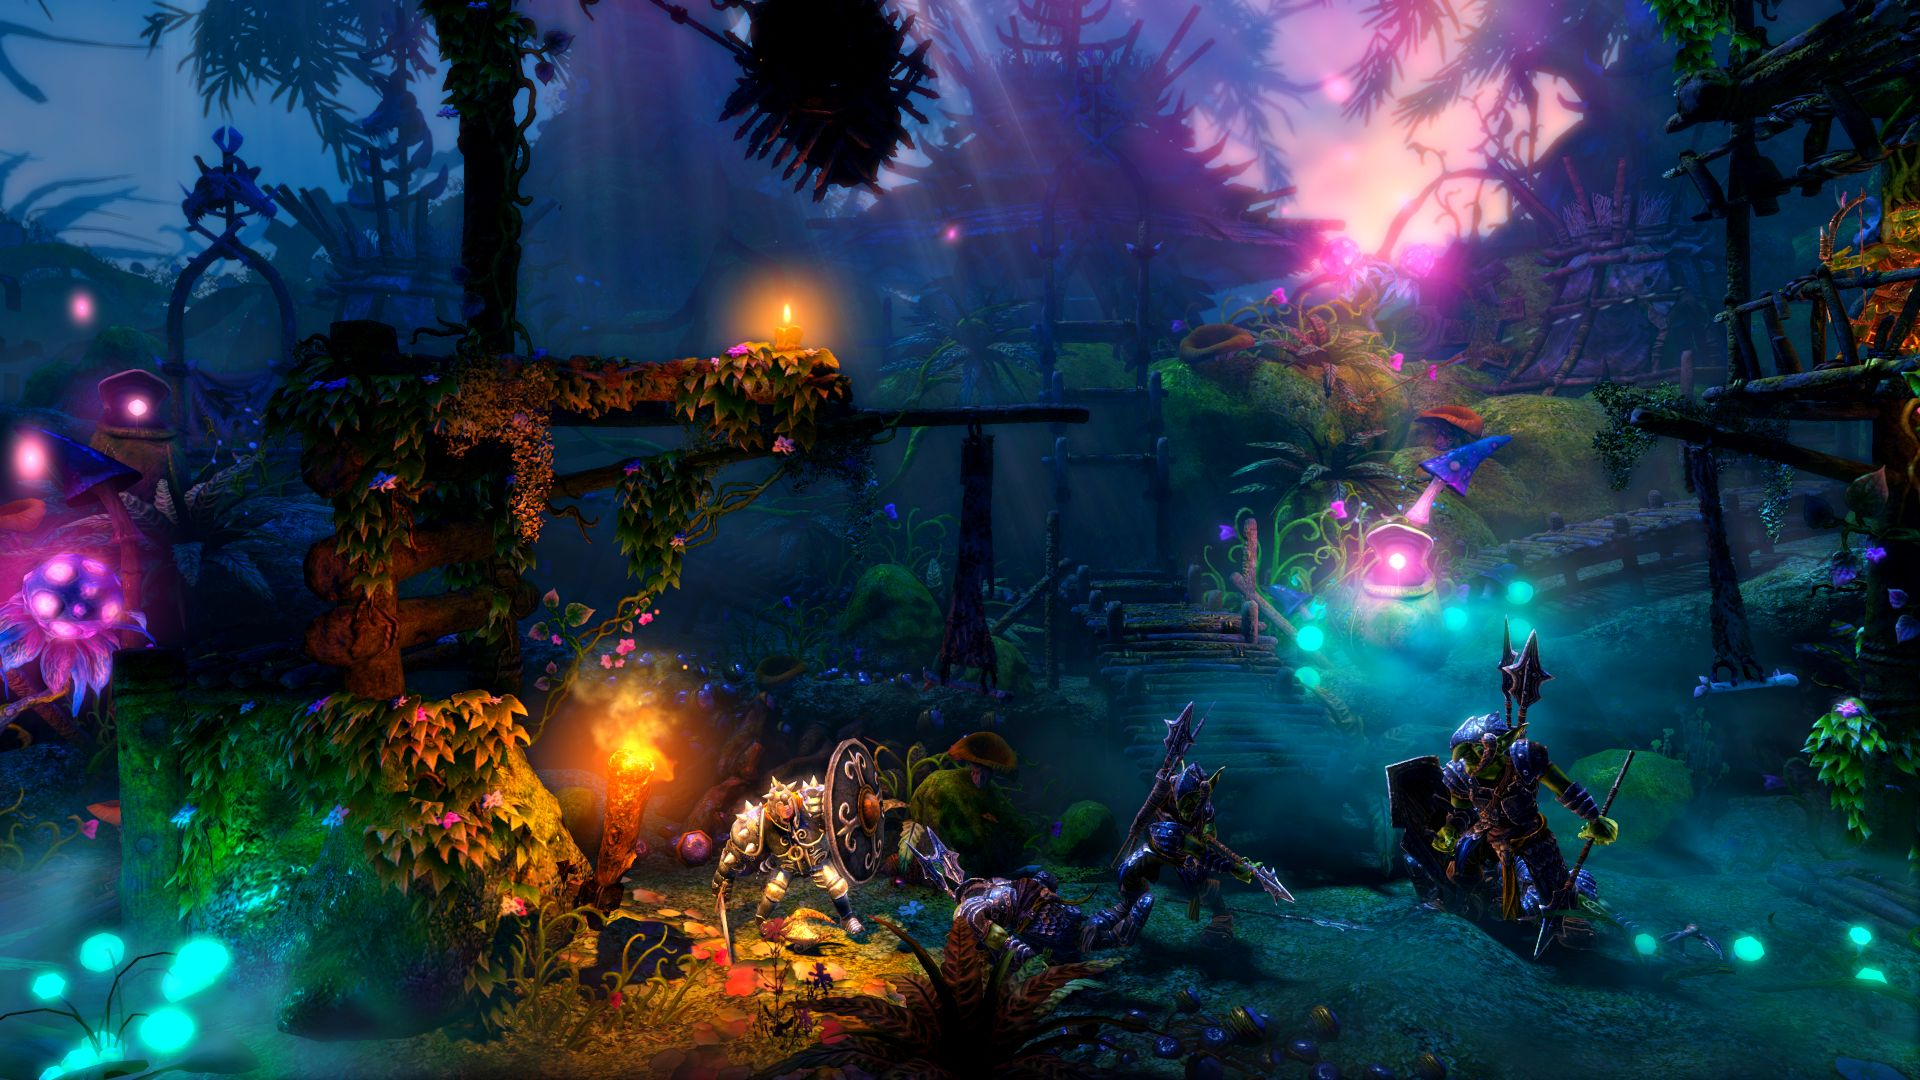 Trine 2 complete story in game